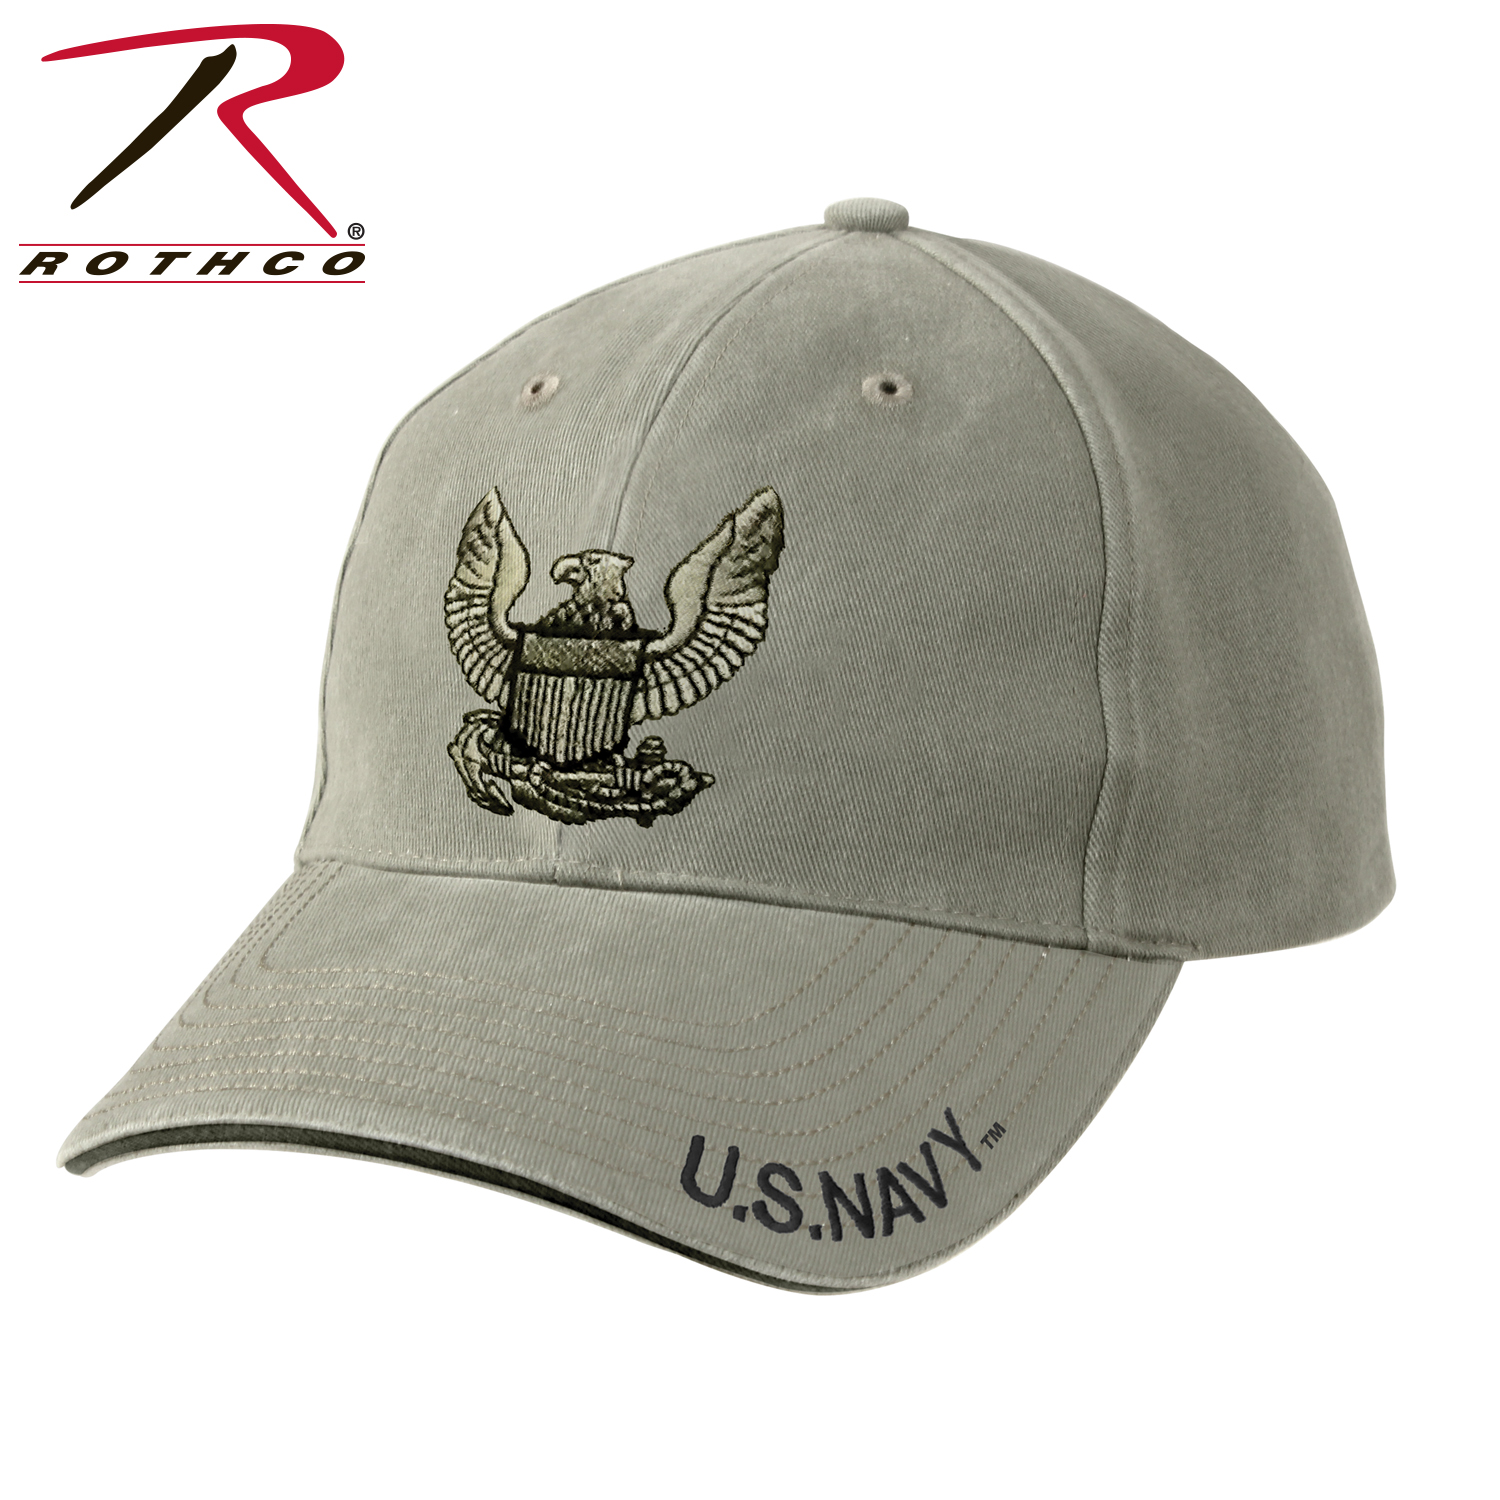 Rothco Vintage U.S. Navy Eagle Low Profile Cap 7a1f3793223